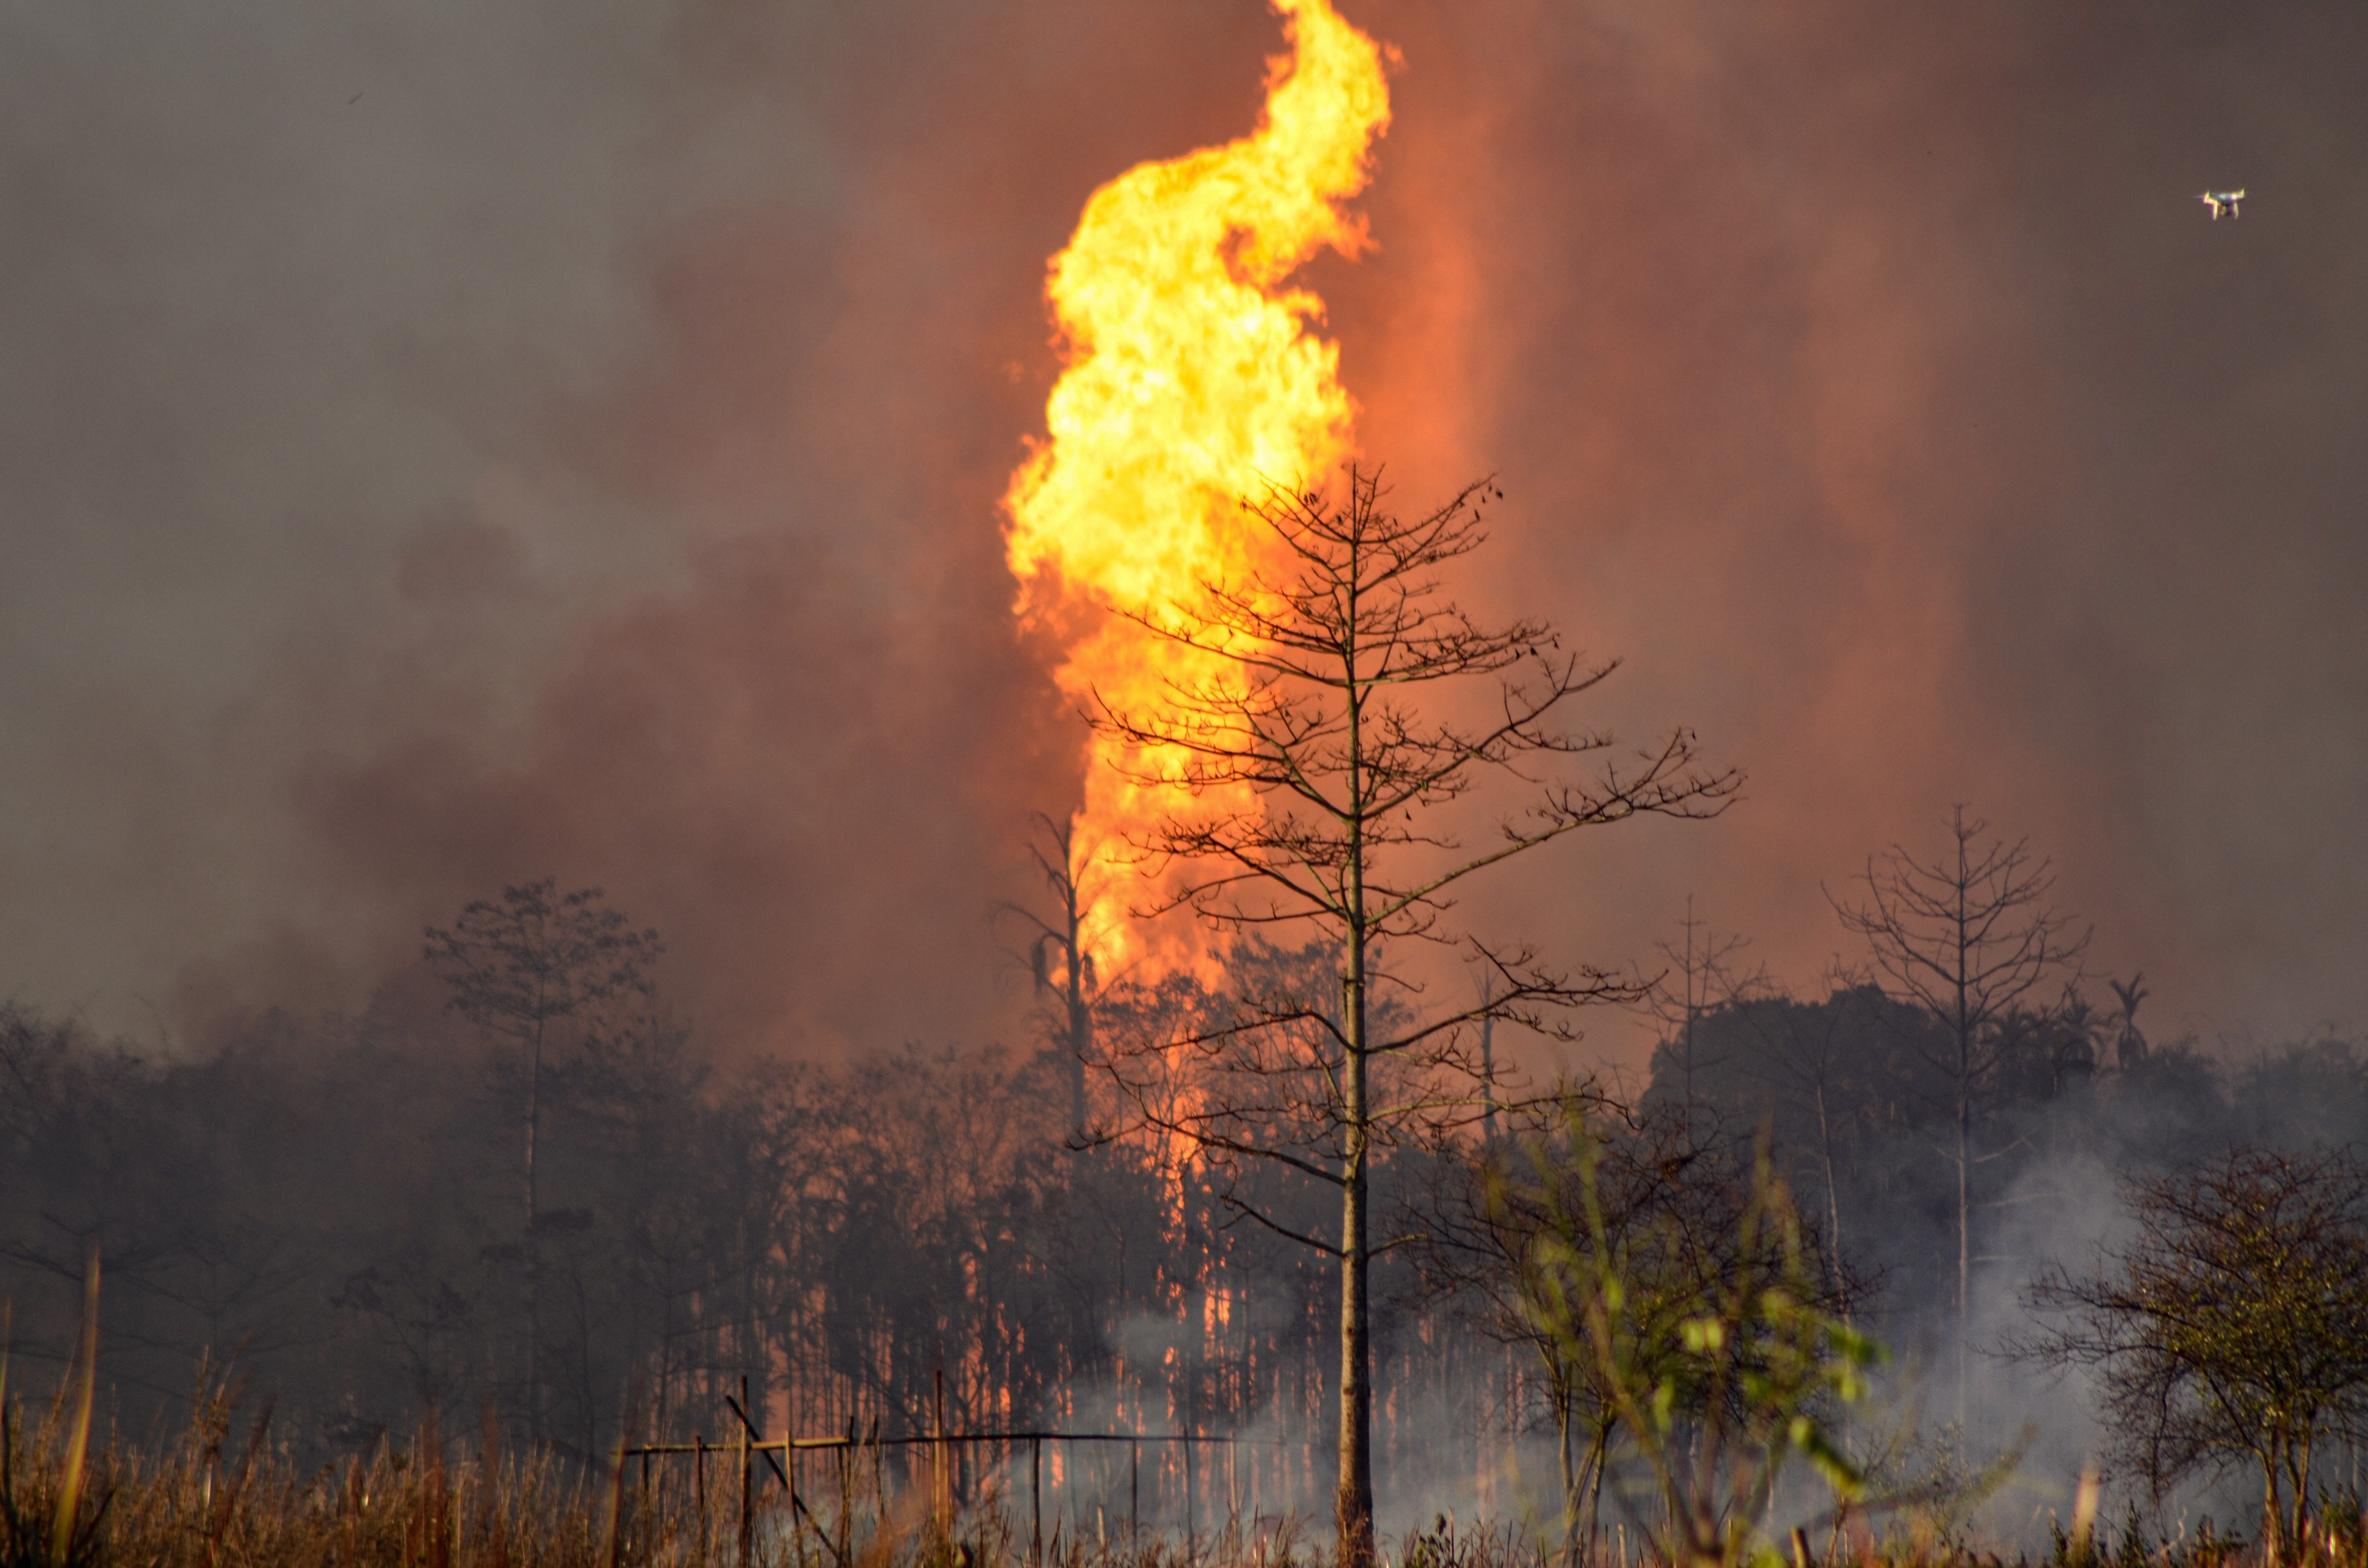 Smoke billows from a fire at the Baghjan oil field, a week after a blowout, in Tinsukia district, Tuesday, June 9, 2020.